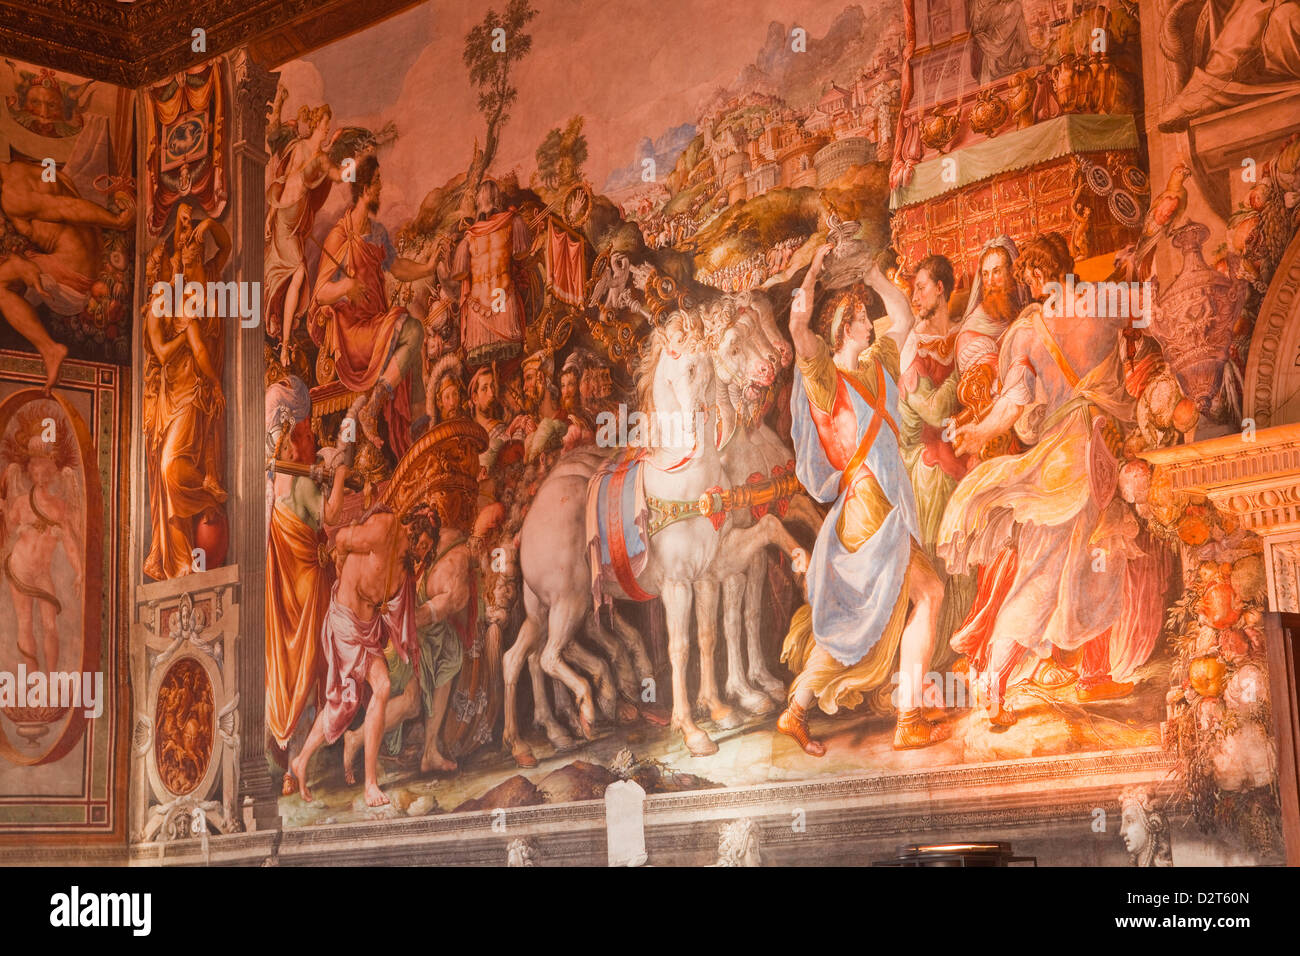 A beautiful mural in Palazzo Vecchio, UNESCO World Heritage Site, Florence, Tuscany, Italy, Europe - Stock Image